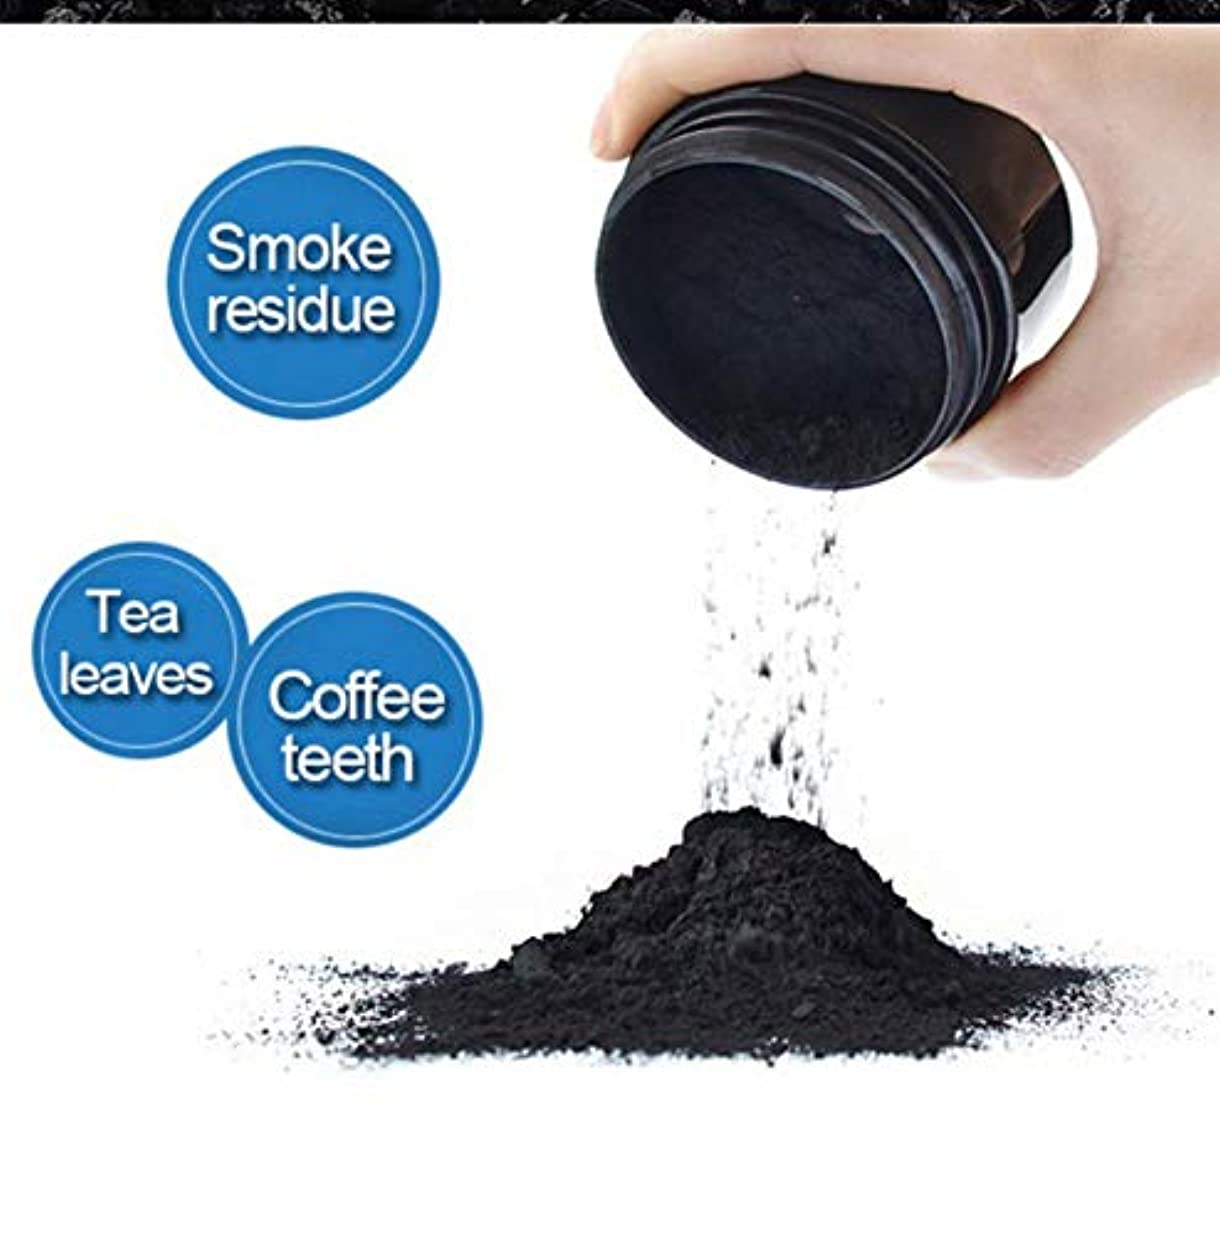 レイアであるましいDaily Use Teeth Whitening Scaling Powder Oral Hygiene Cleaning Packing Premium Activated Bamboo Charcoal Powder...